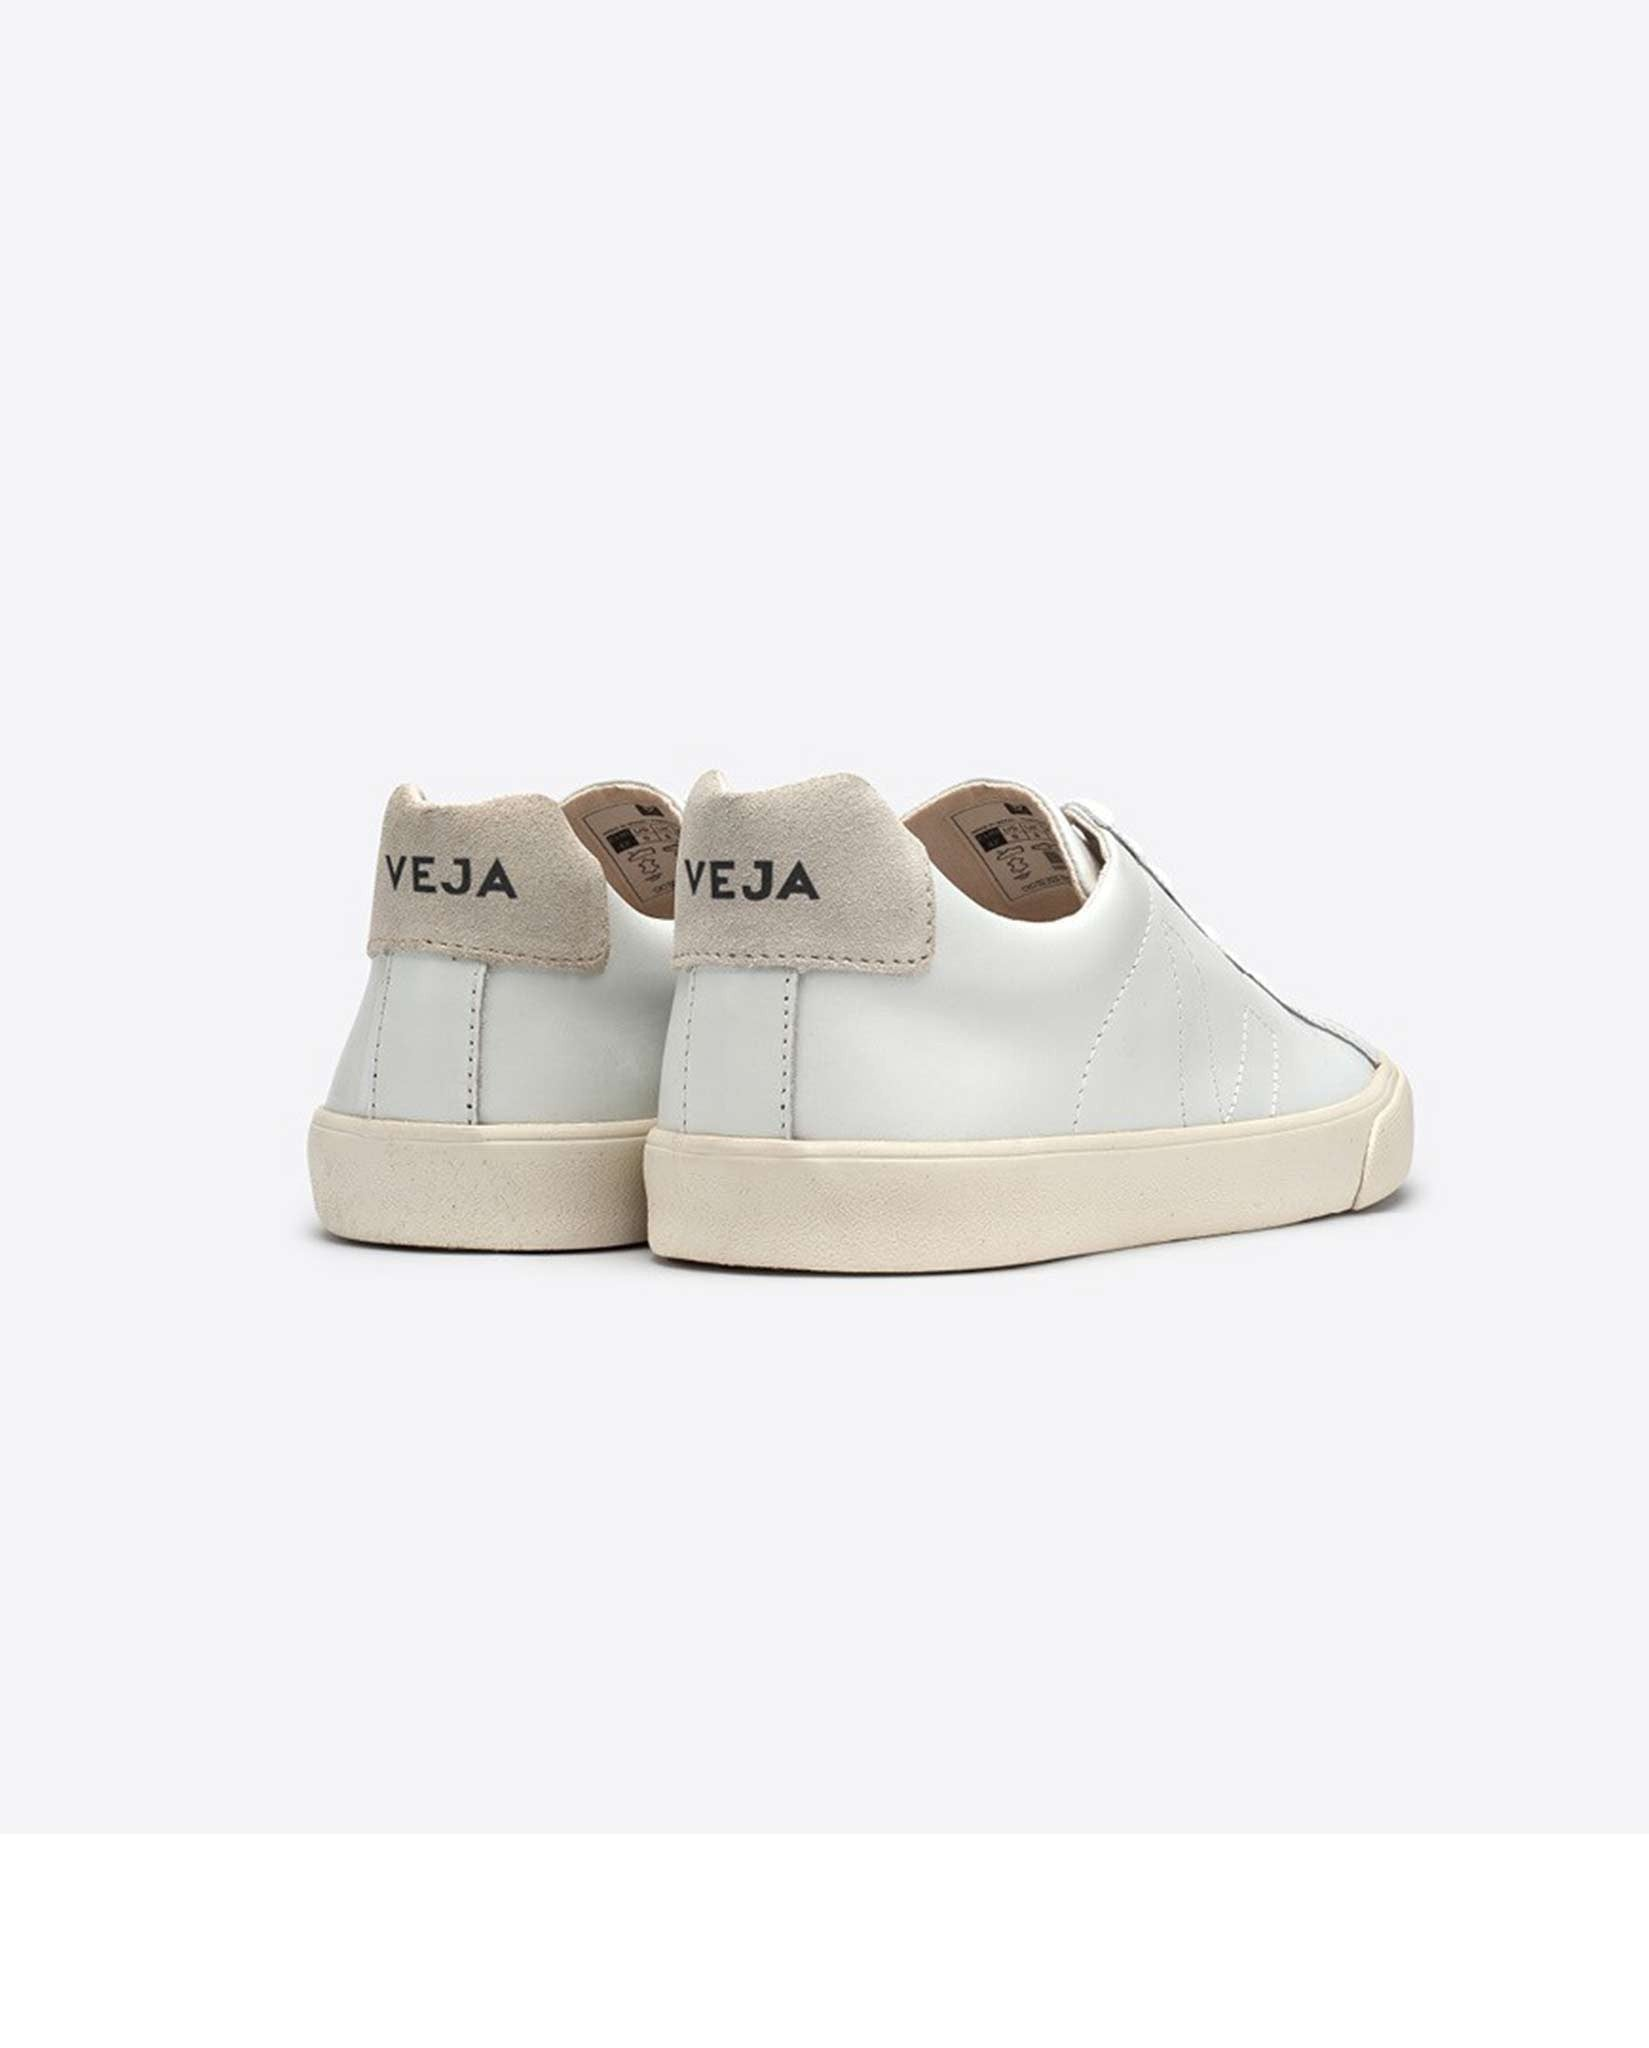 Veja Esplar leather trainers white on white-Diverse